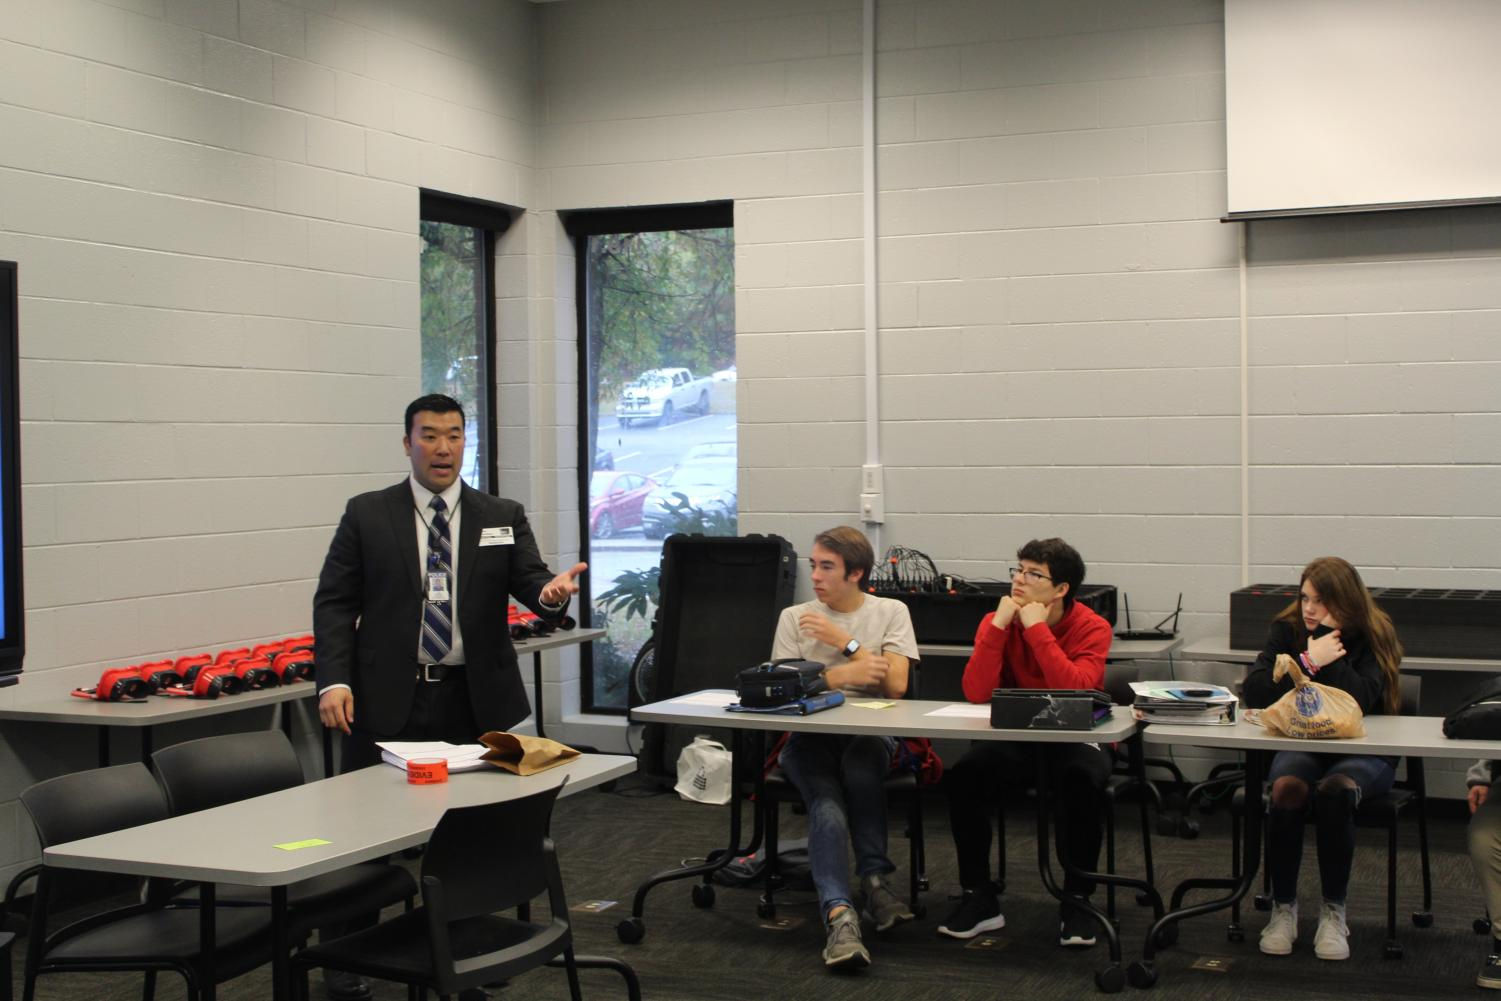 Peachtree City Detectives Present at McIntosh